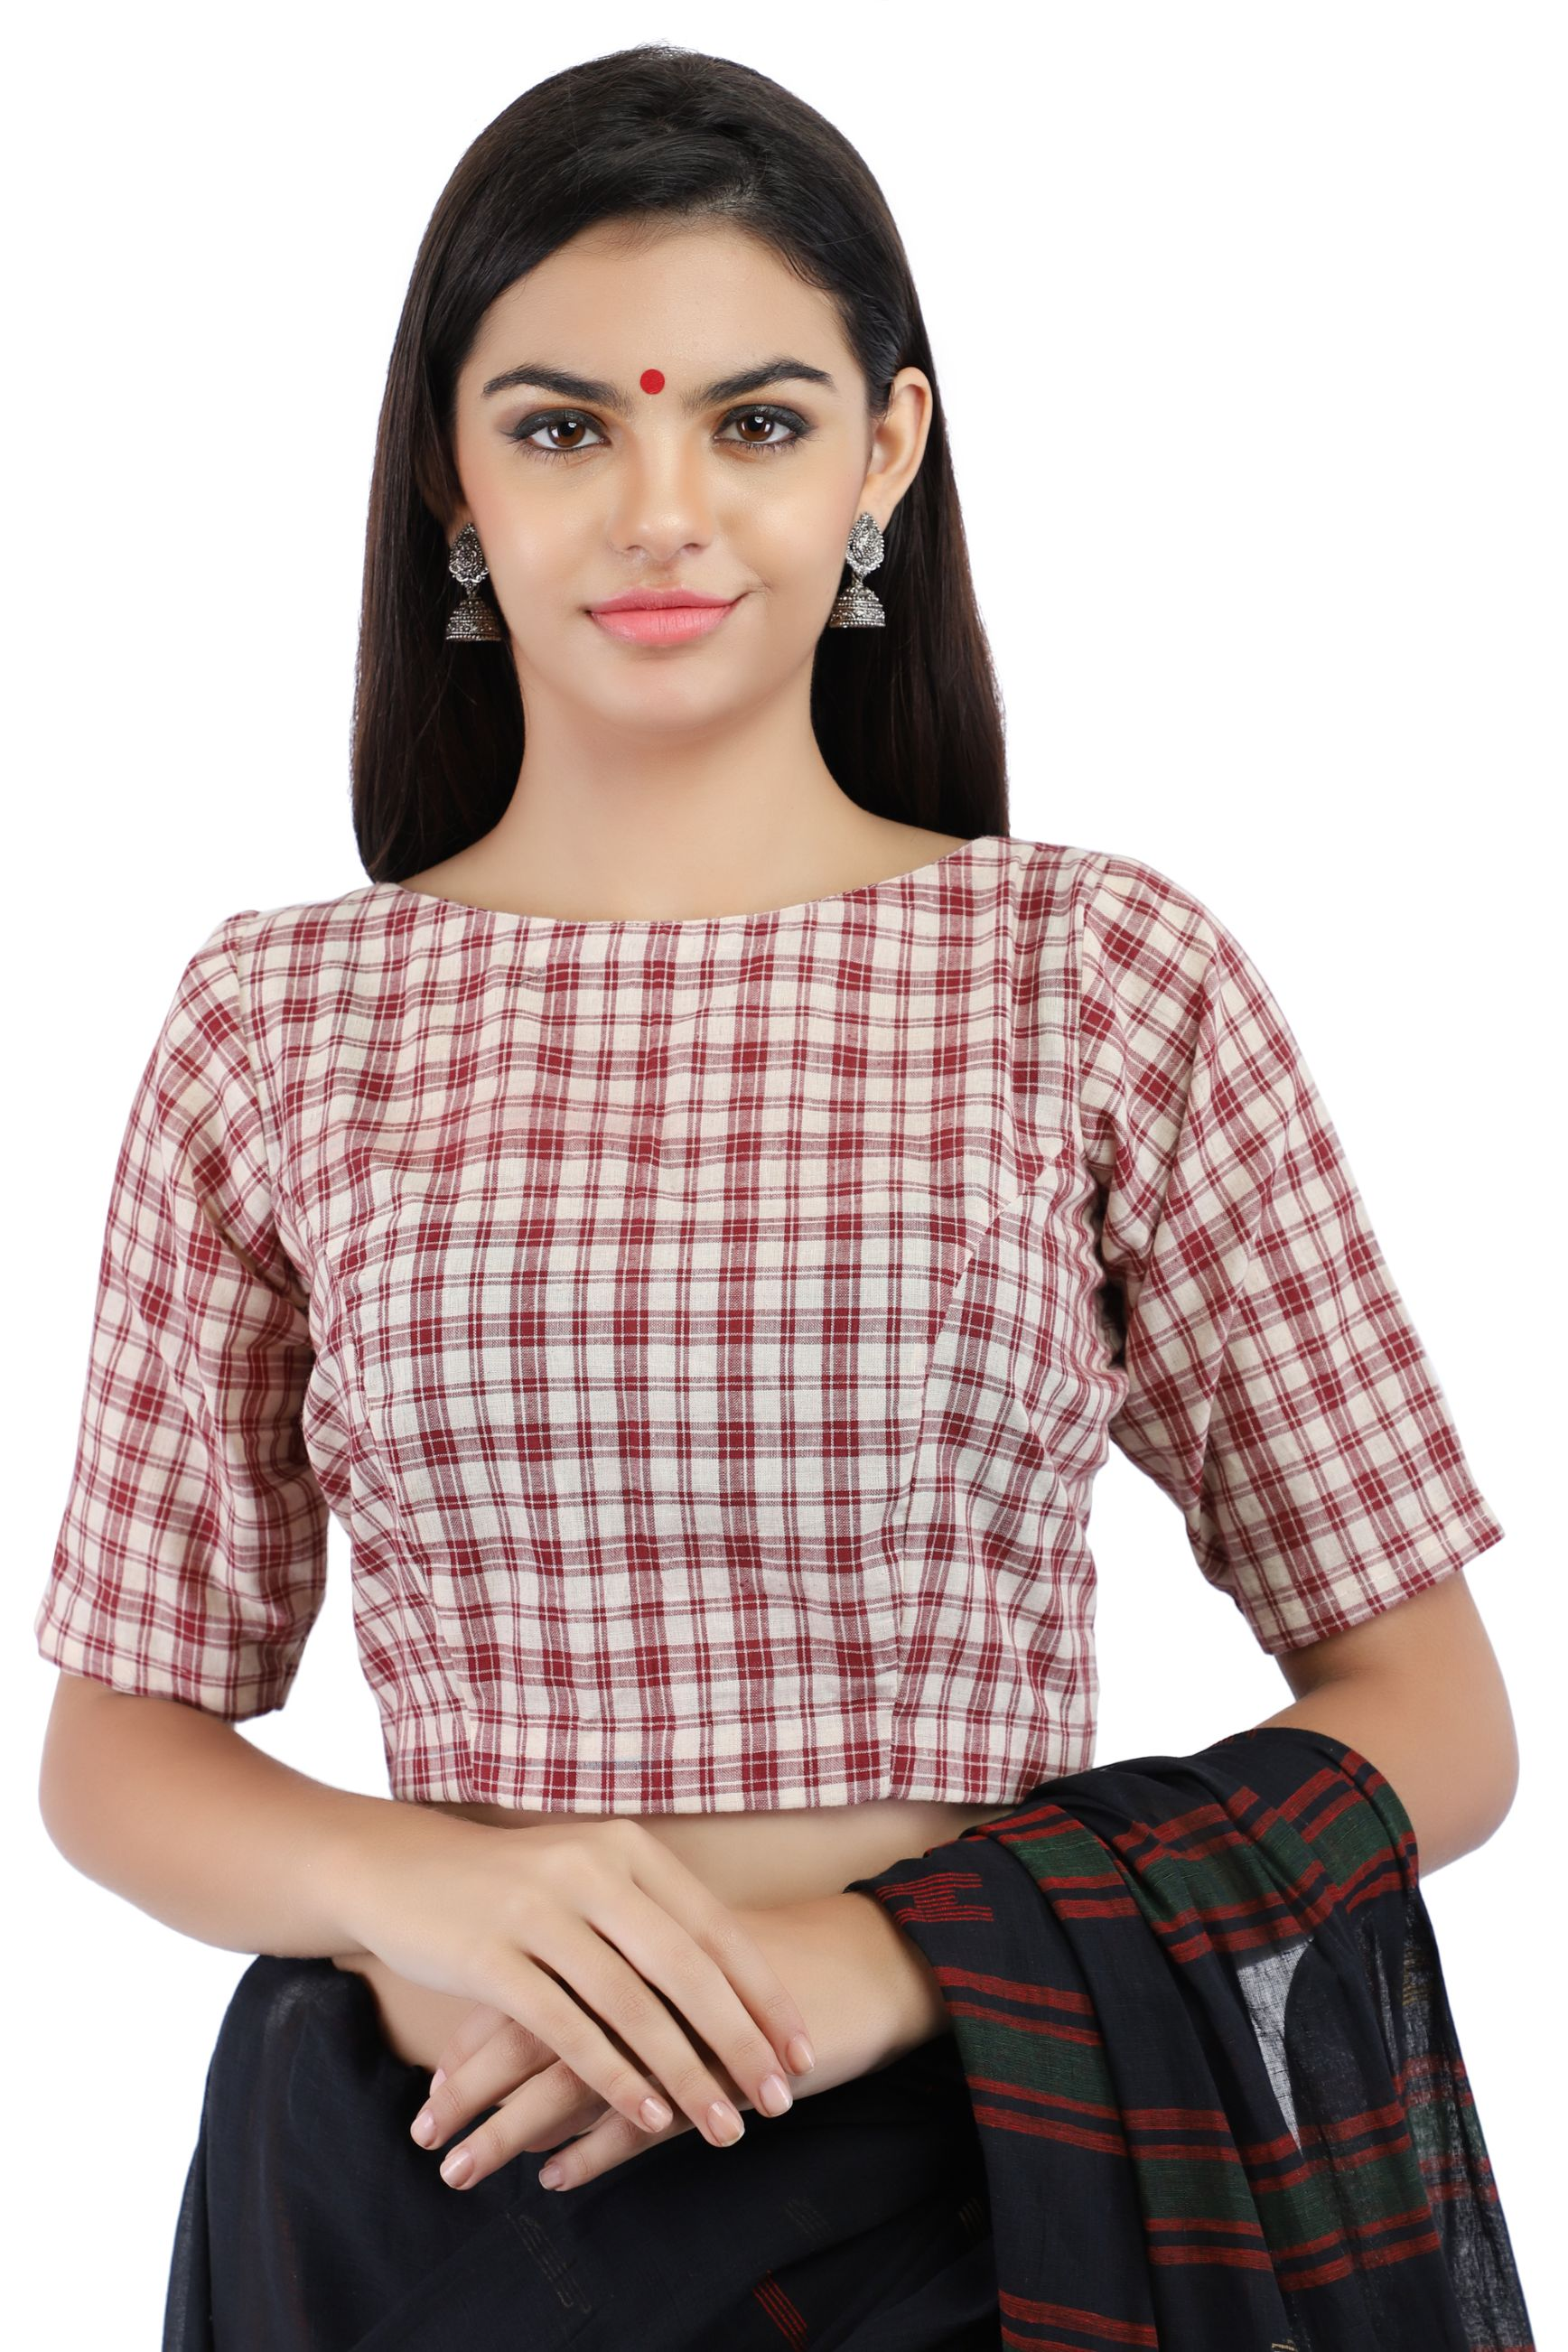 Handloom Maroon and White Pure Cotton Checks Boat Neck Blouse With Back Keyhole